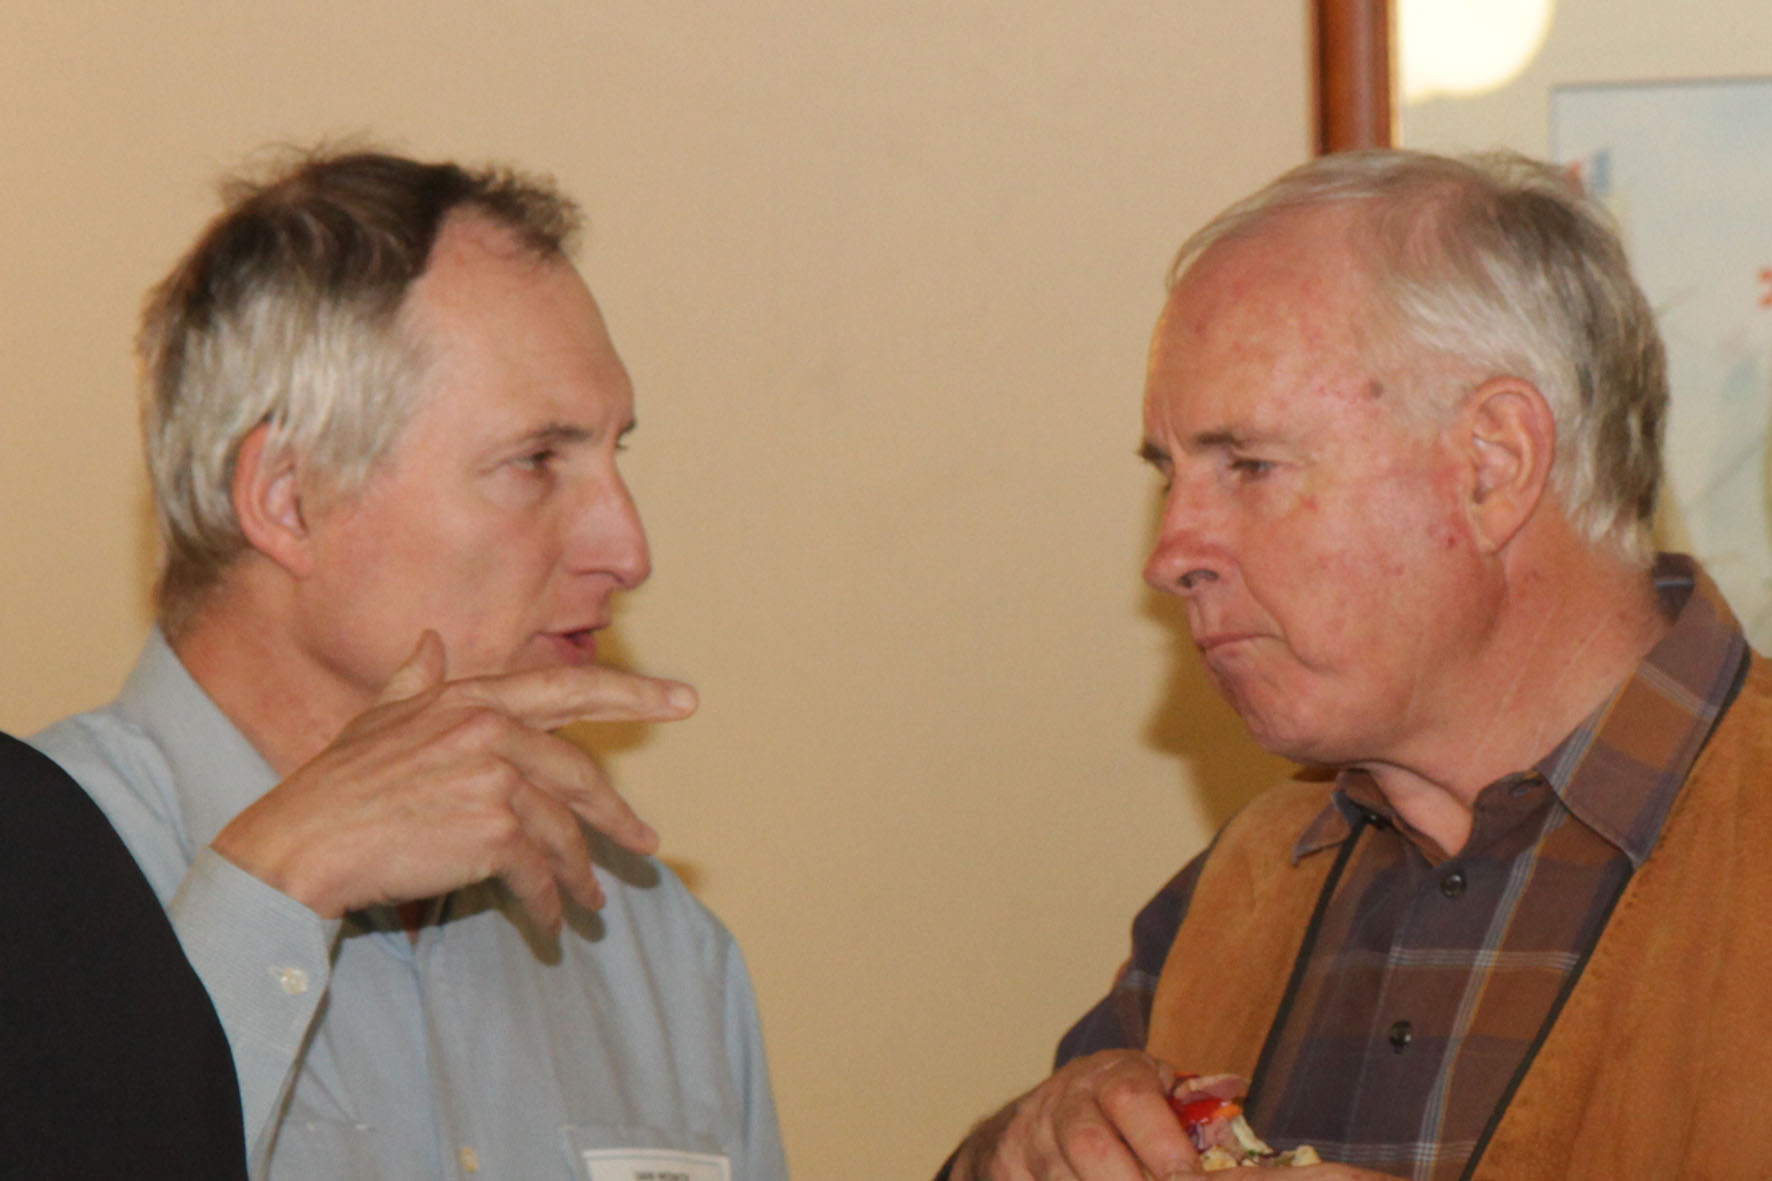 Jan Mink (left) and Andrew Skinner (right)